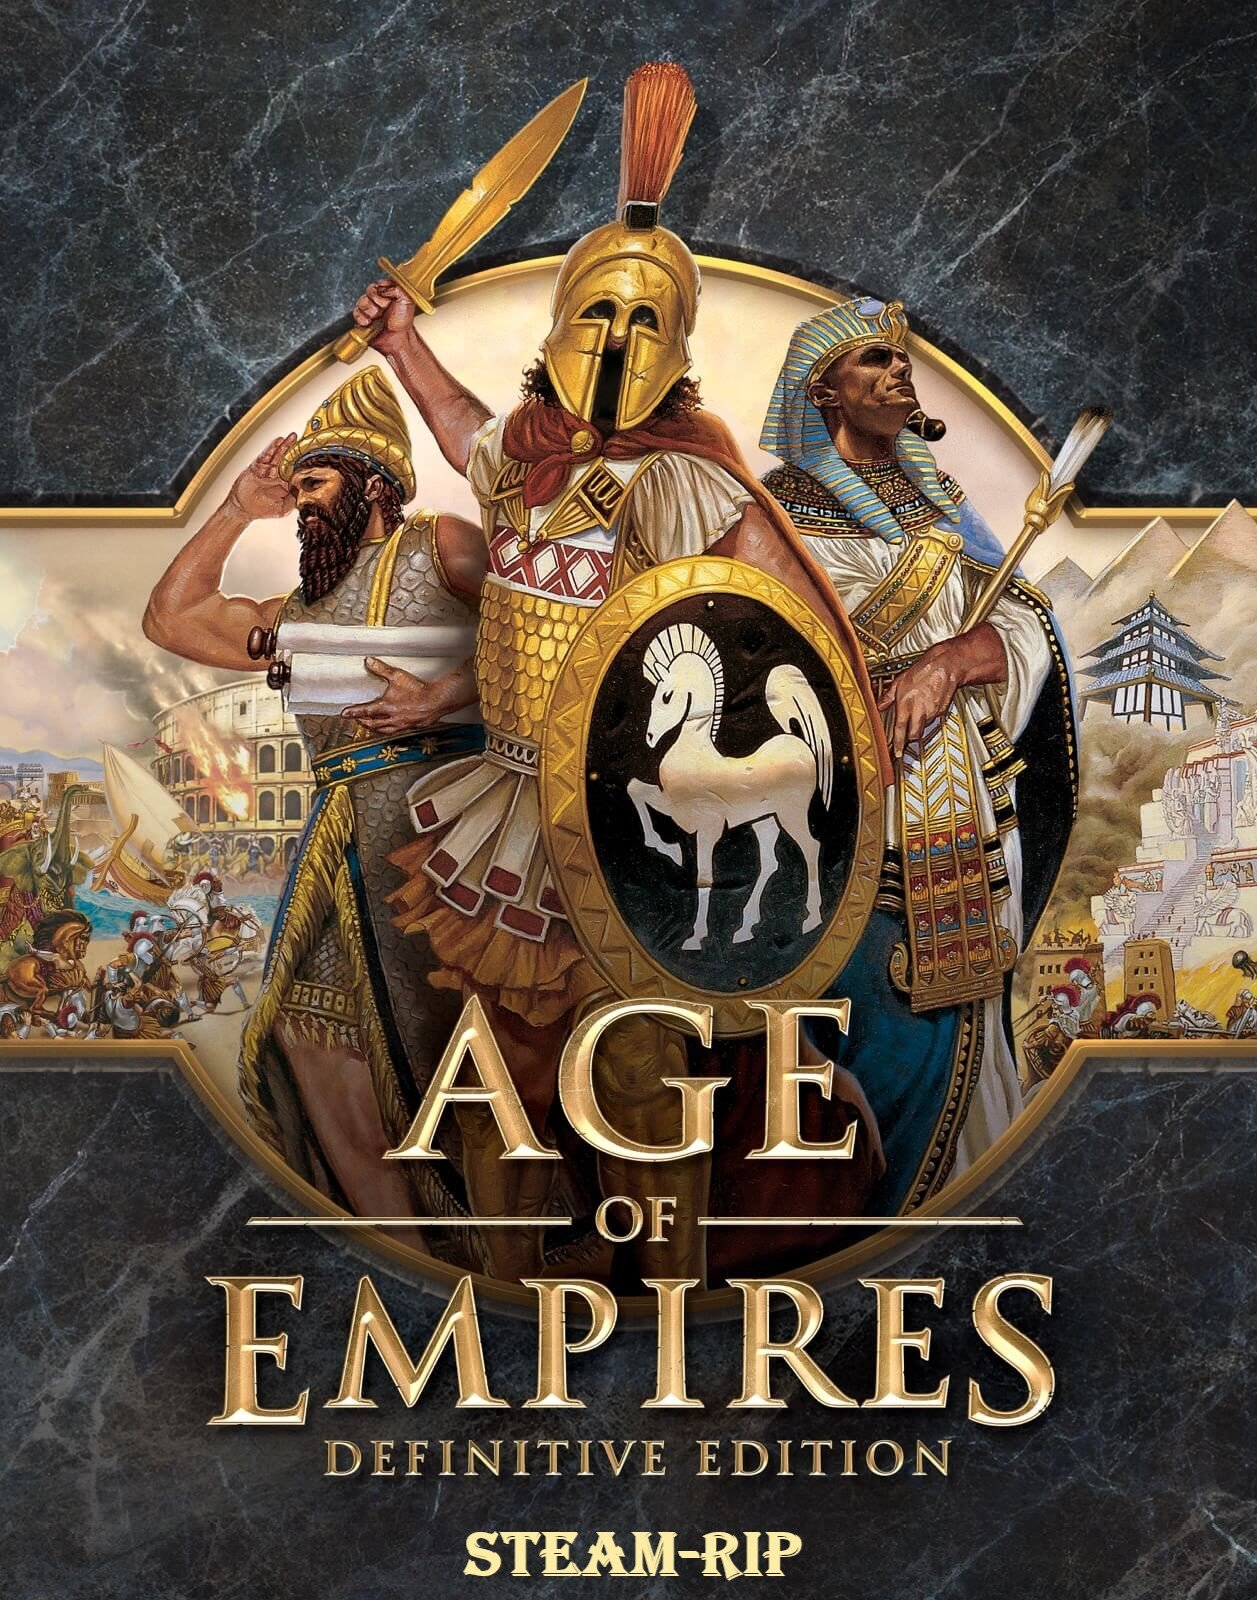 Cover Age of Empires III: Definitive Edition [Steam-Rip] (2005-2020) download torrent License